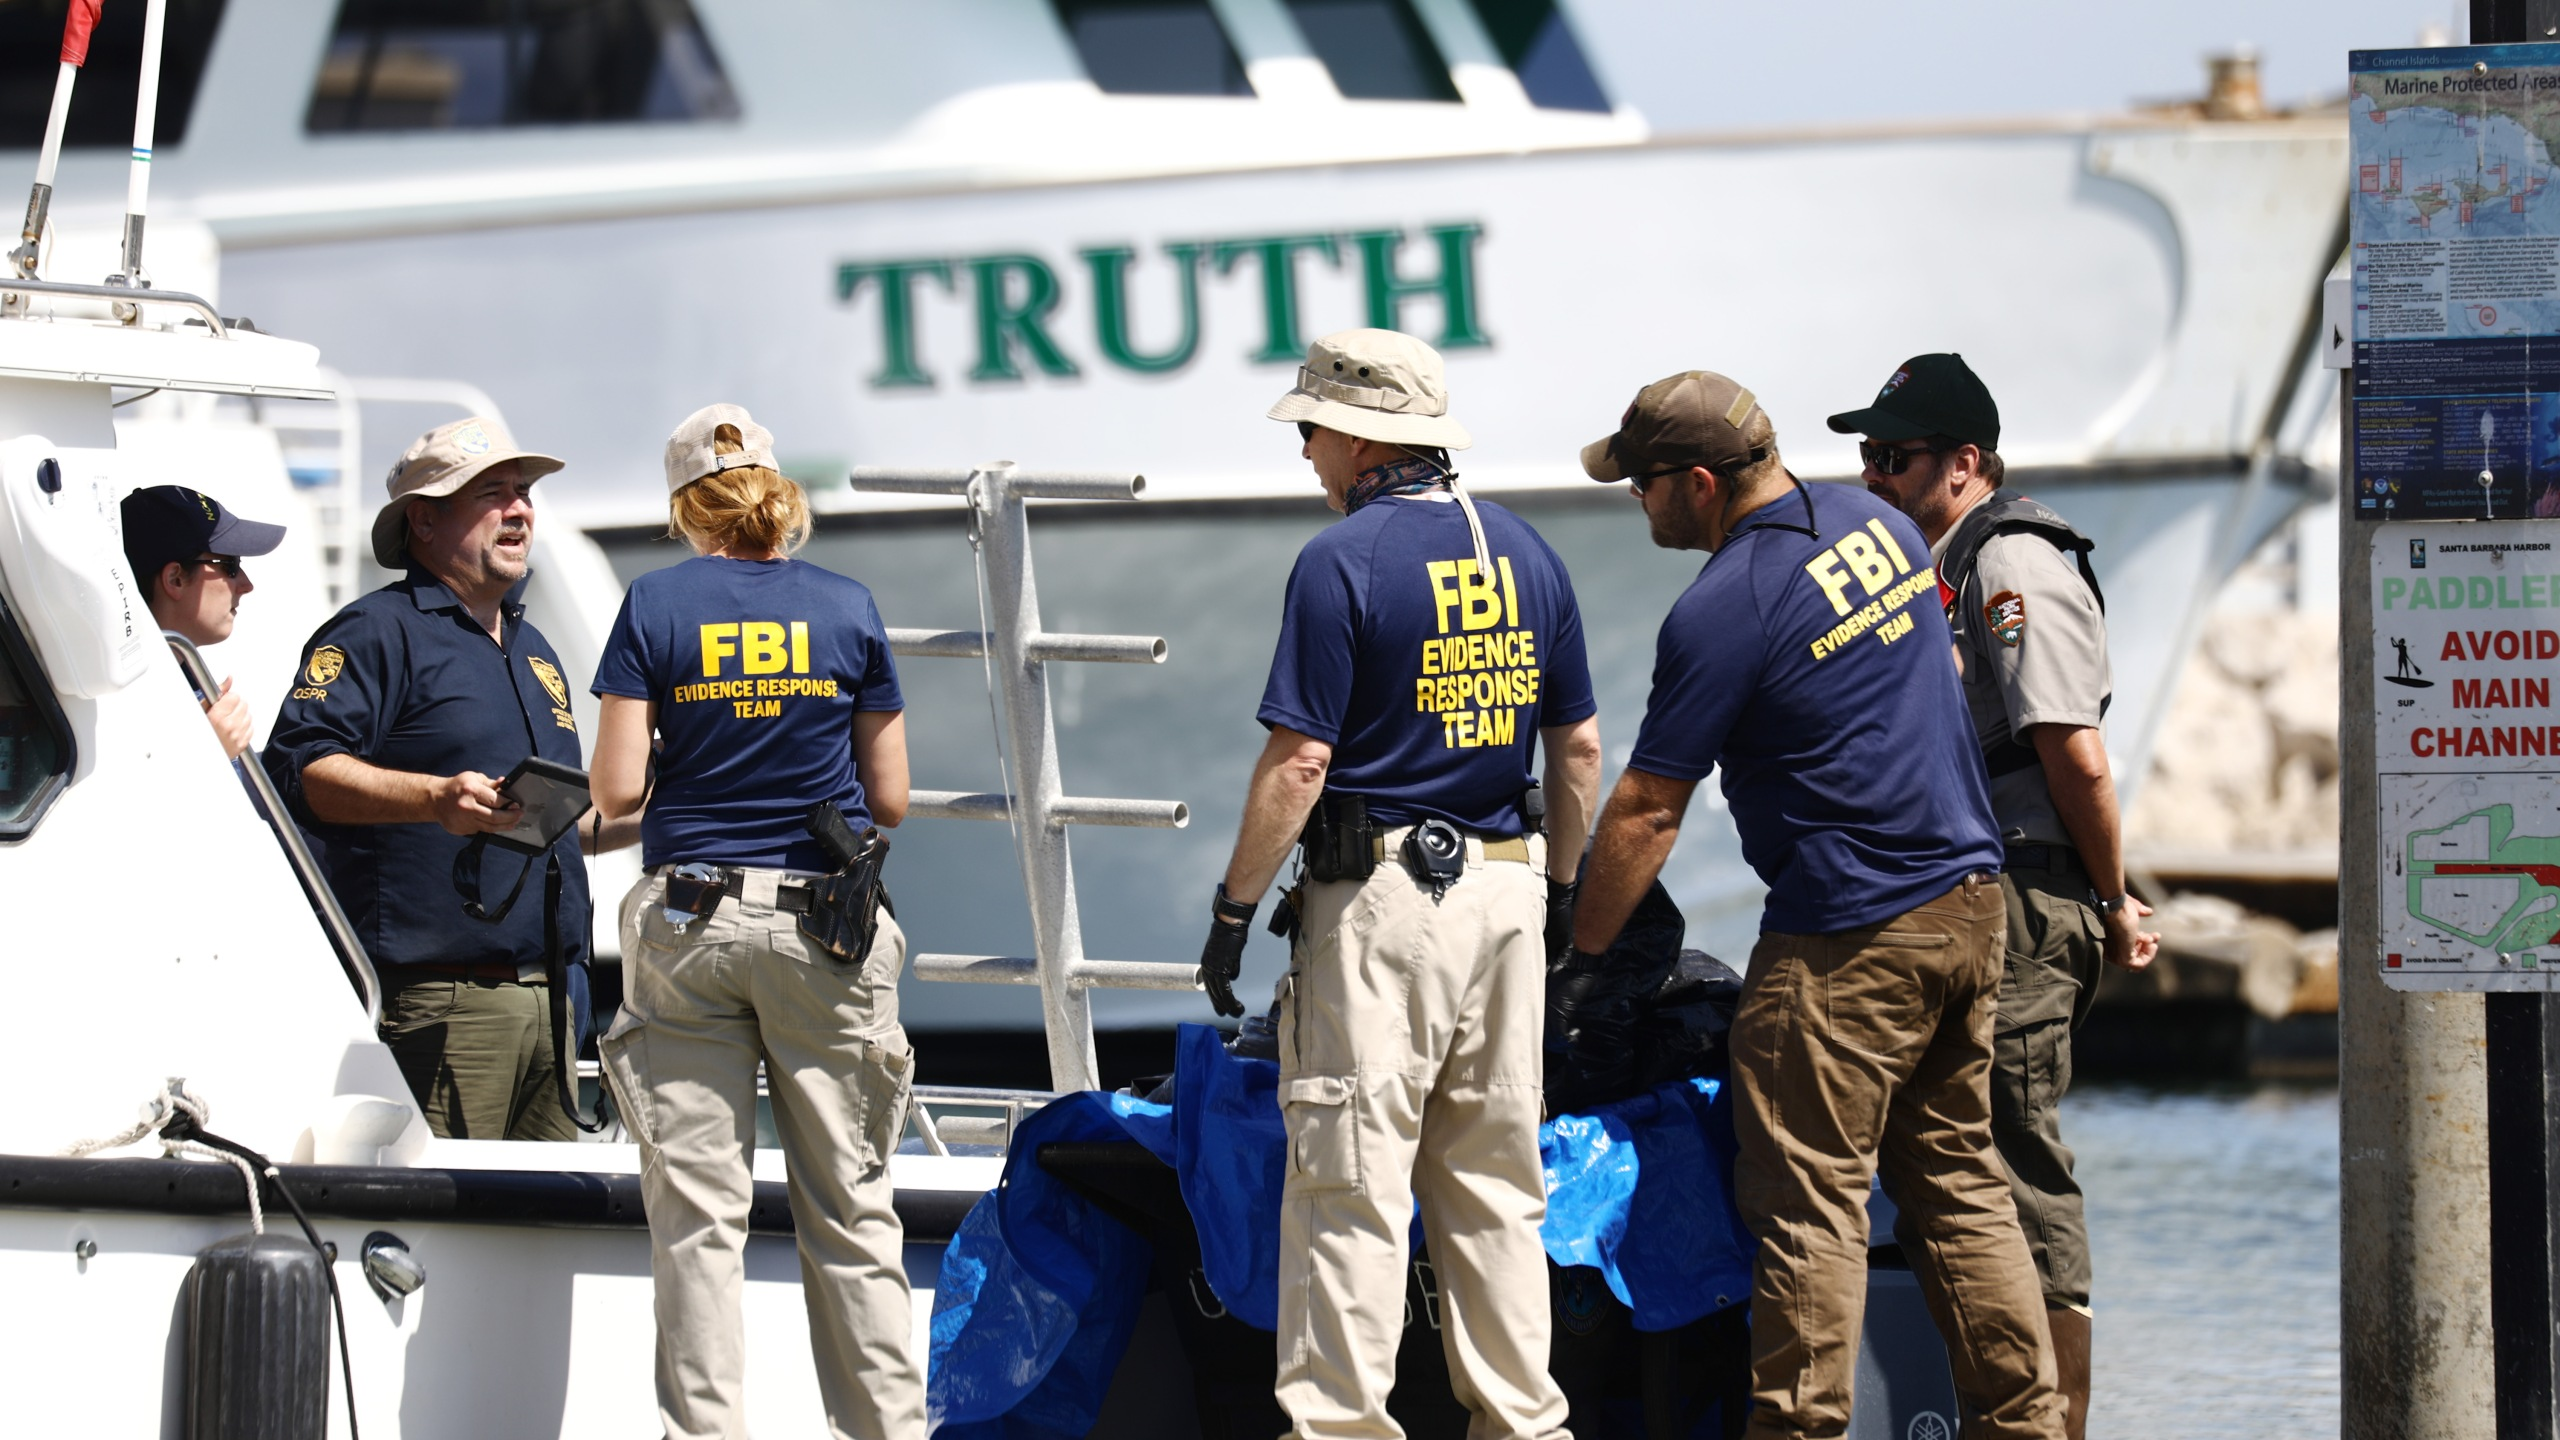 Members of the FBI Evidence Response Team and other officials work in front of the ship Truth, a sister ship of the diving ship Conception in Santa Barbara on Sept. 3, 2019. (Credit: Mario Tama/Getty Images)